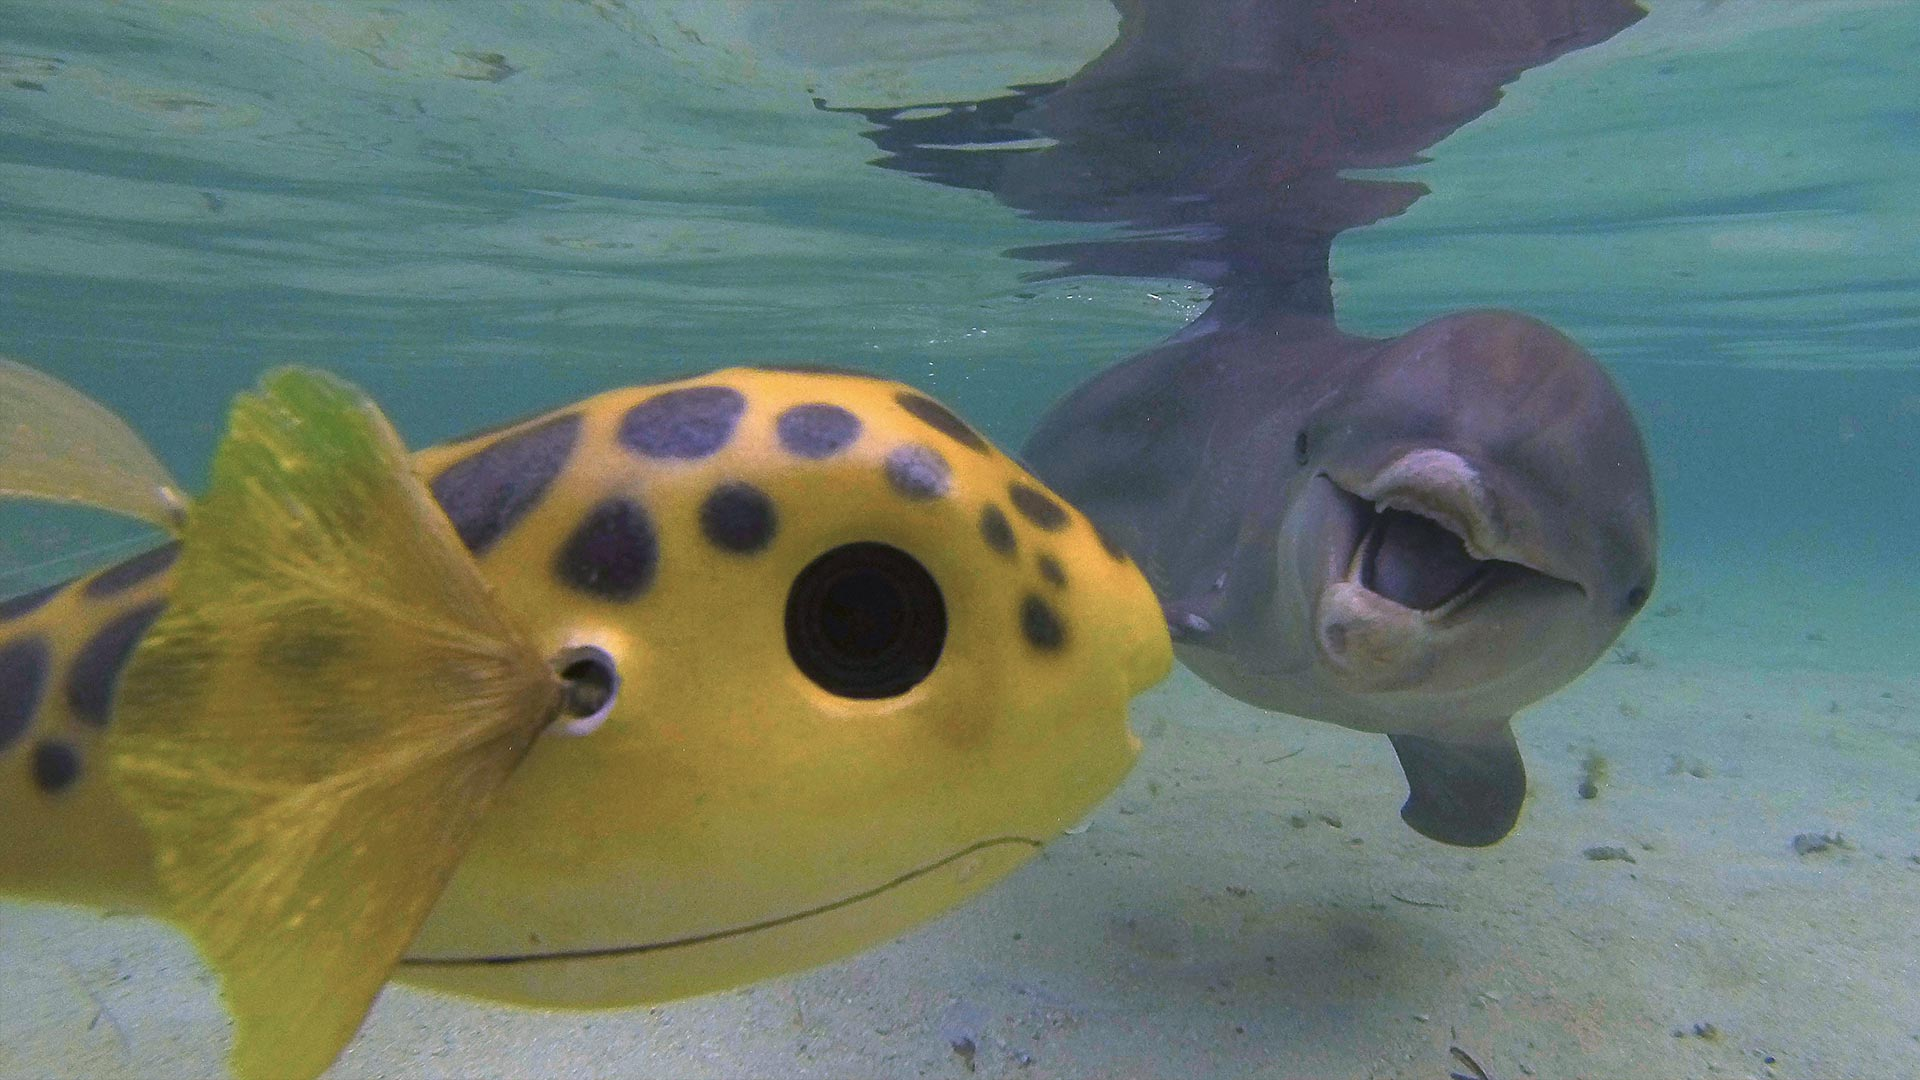 Spy Pufferfish 1 and bottlenose dolphin